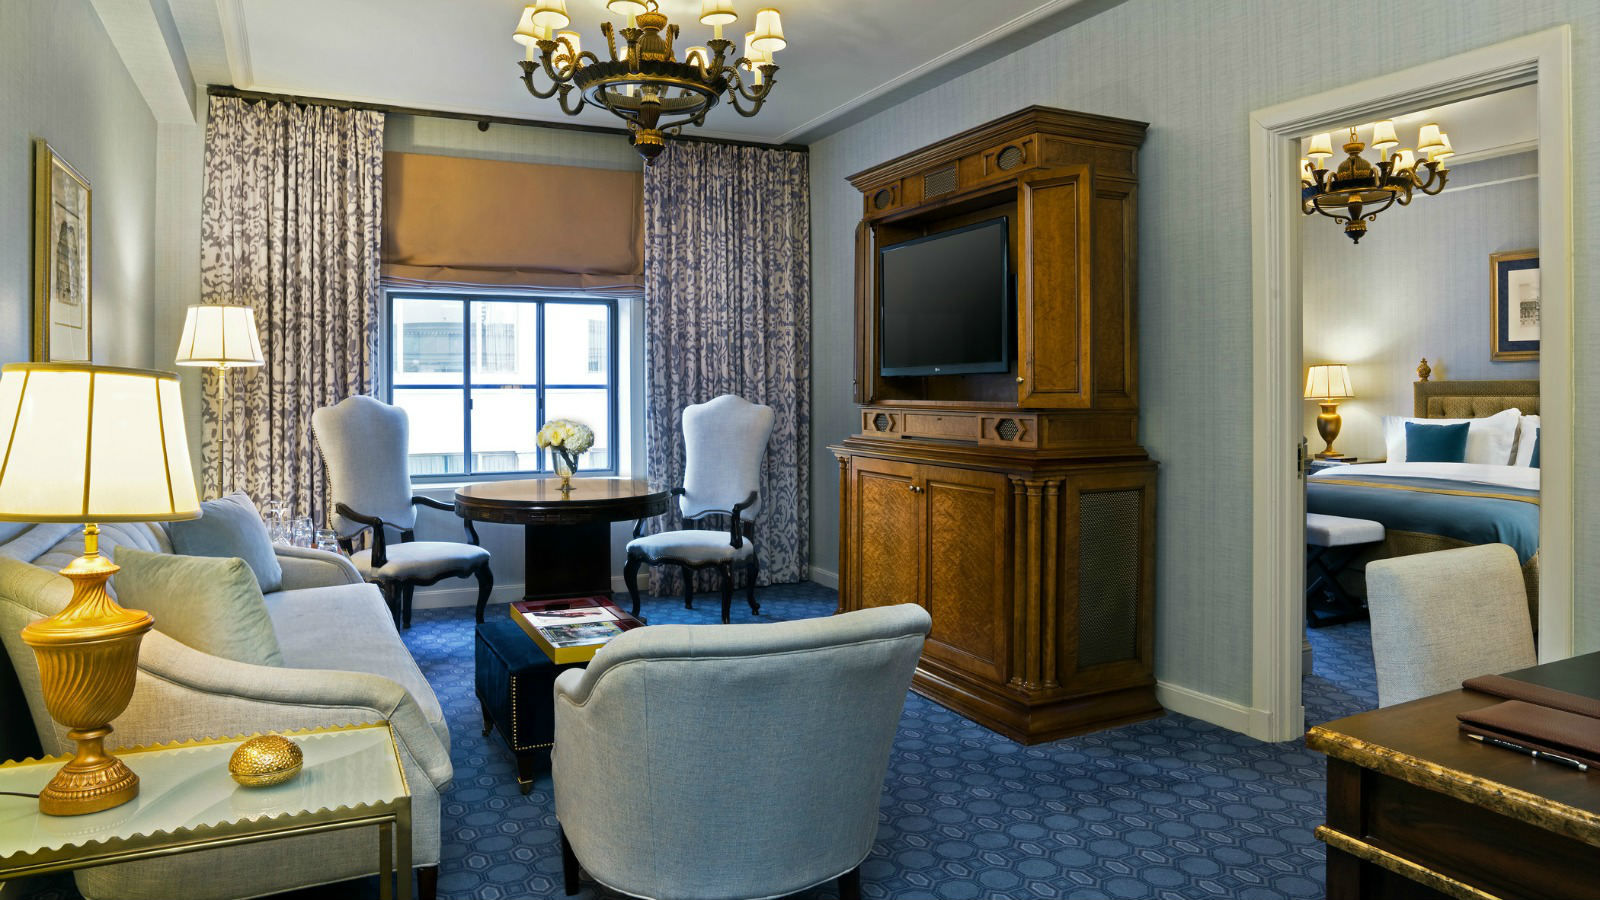 The St. Regis Washington, D.C. - Caroline Astor Suite Parlor